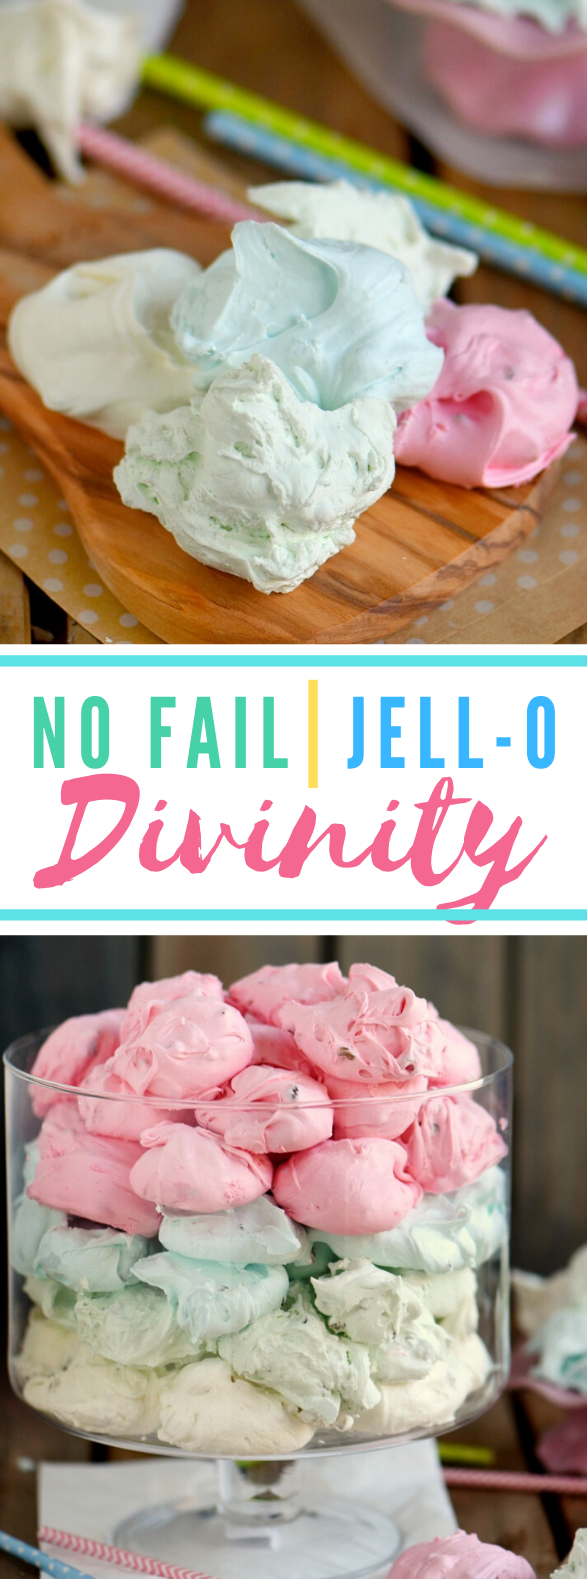 NO FAIL JELL-O DIVINITY #desserts #easterholiday